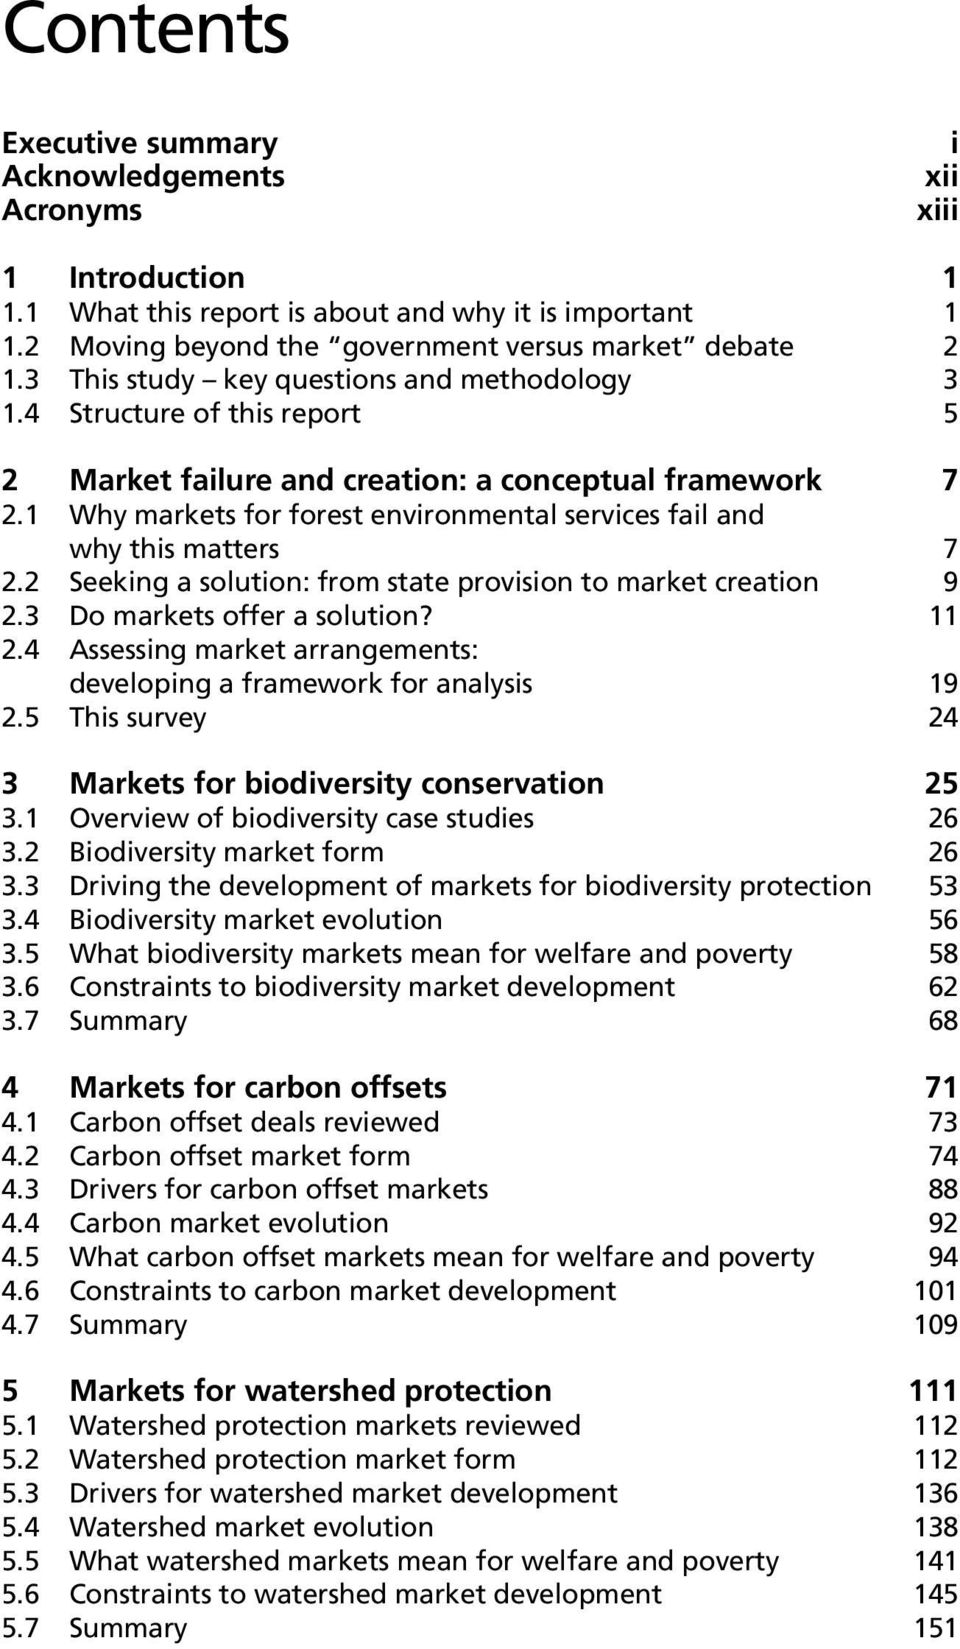 1 Why markets for forest environmental services fail and why this matters 7 2.2 Seeking a solution: from state provision to market creation 9 2.3 Do markets offer a solution? 11 2.